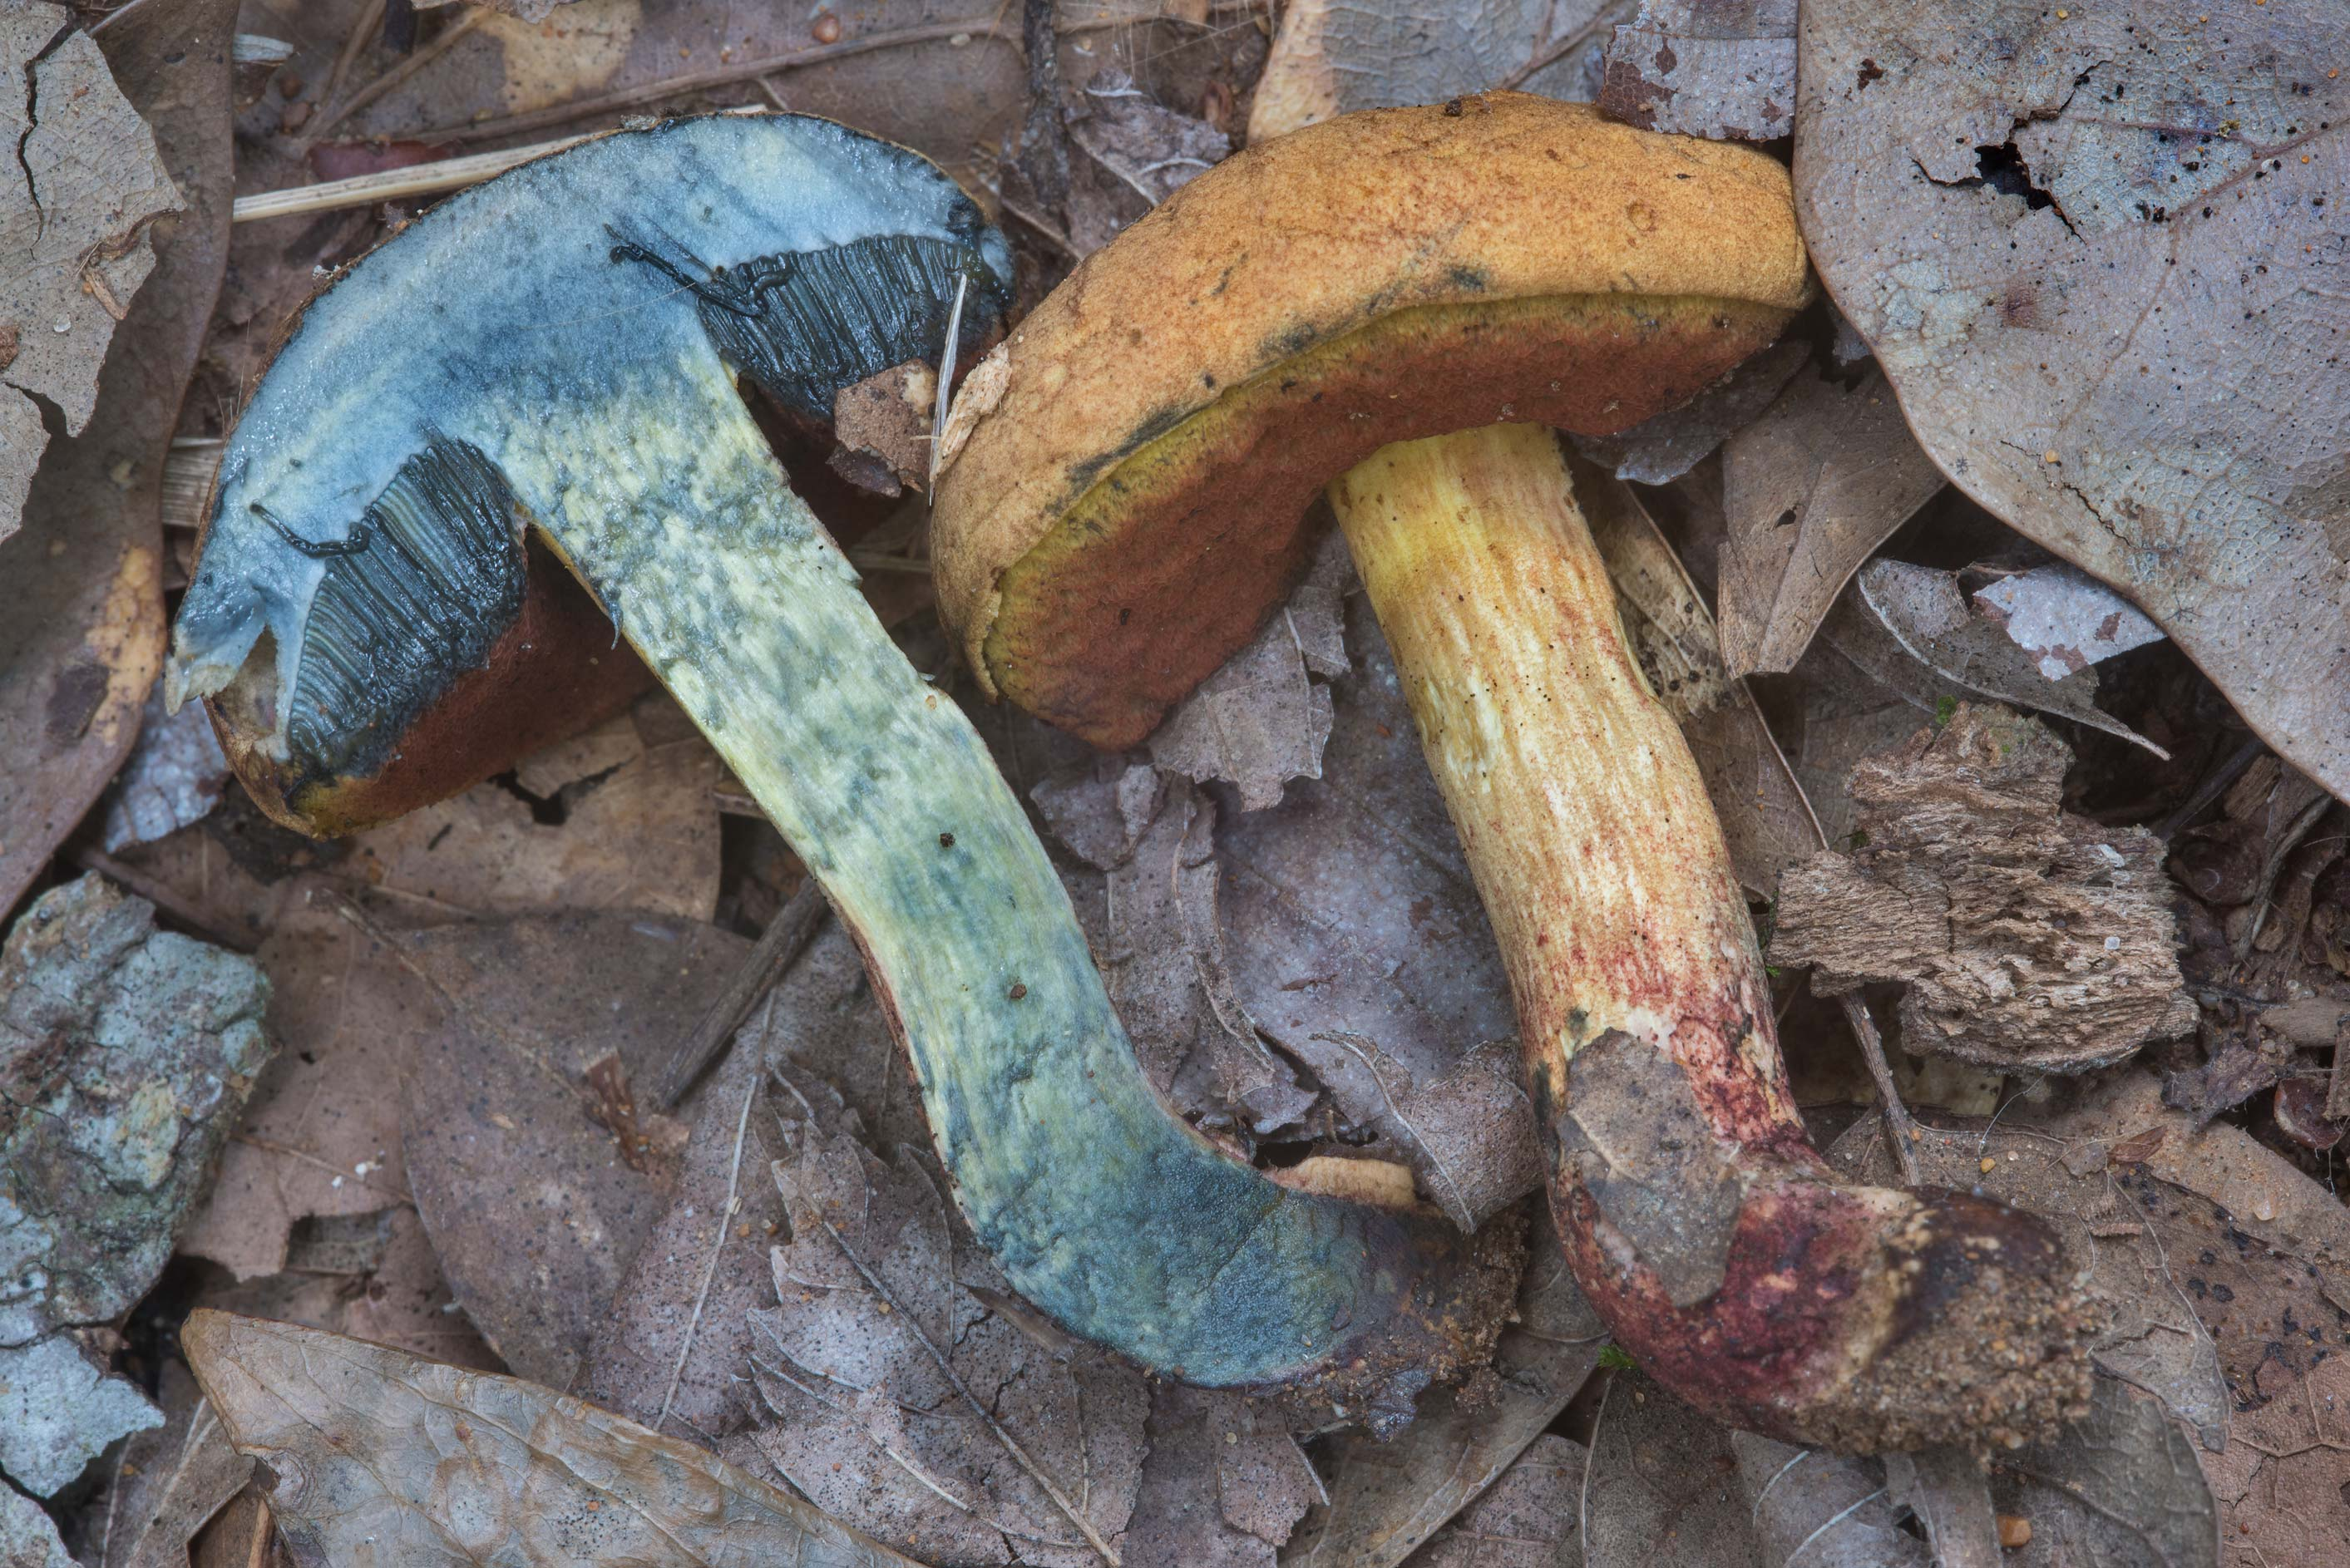 Dissected Hickory Bolete mushroom (Suillellus...Creek Park. College Station, Texas